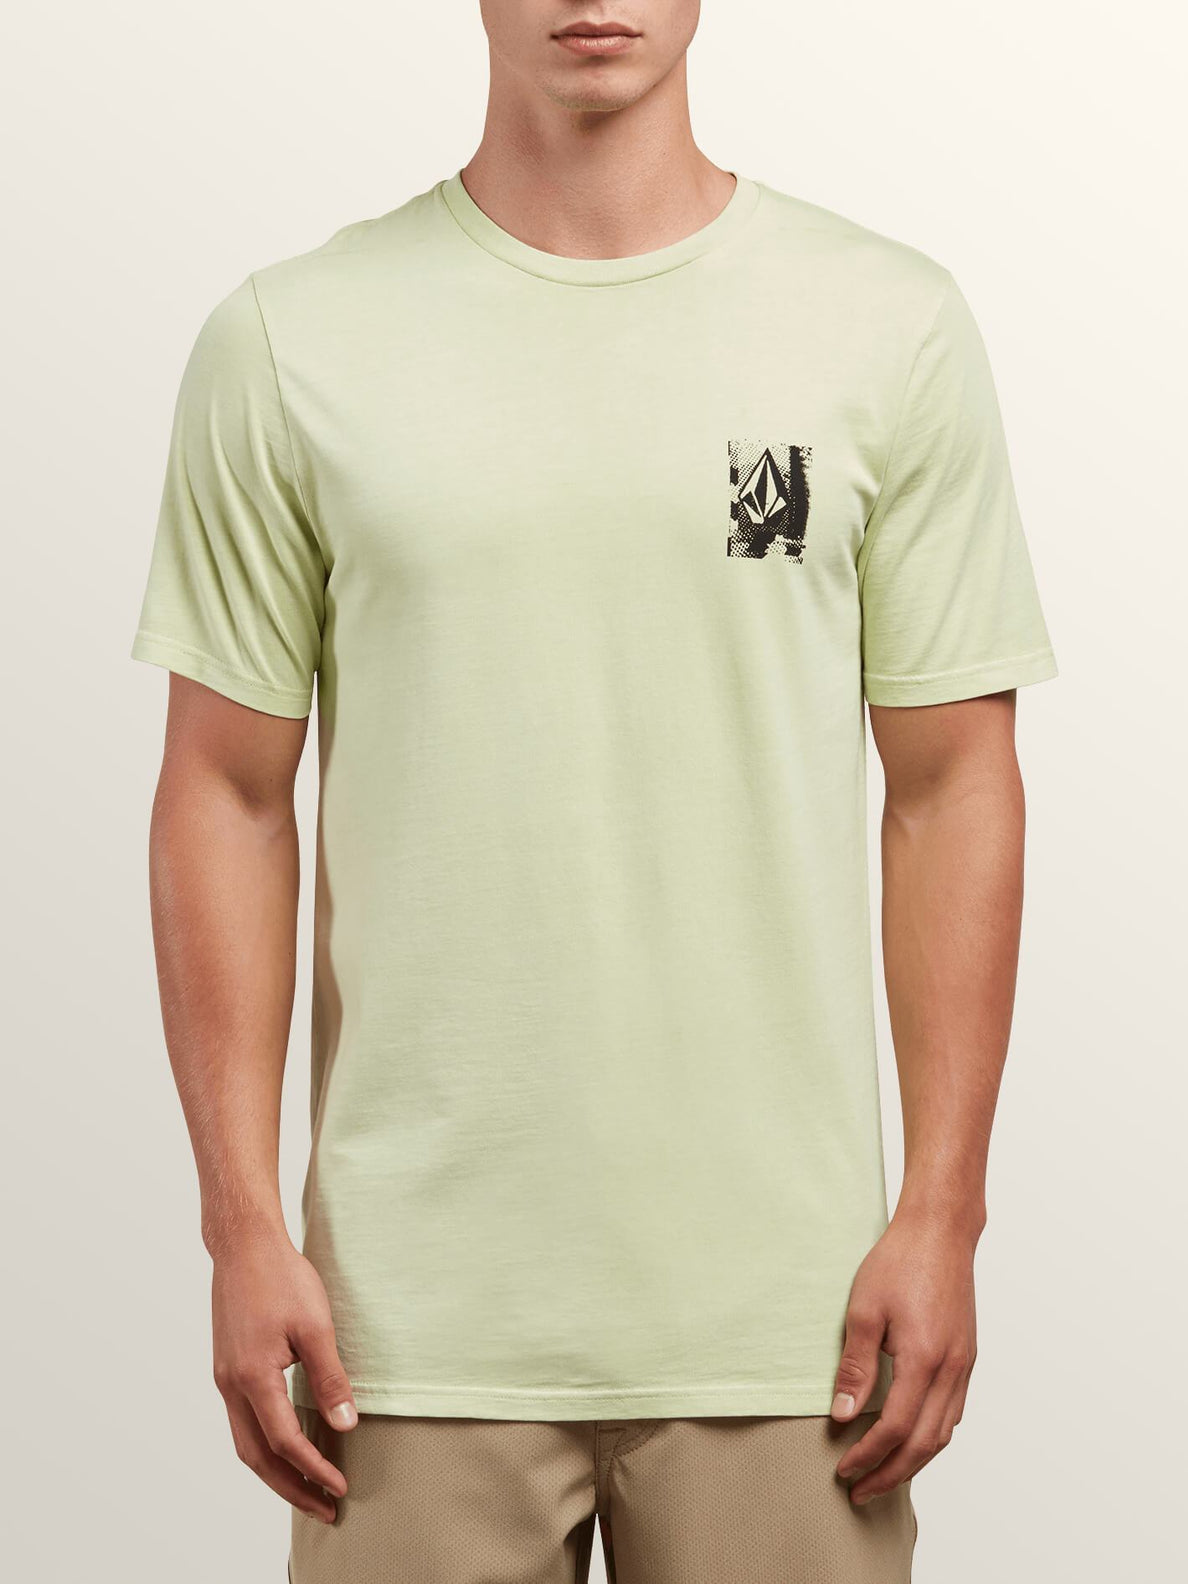 Lifer Short Sleeve Tee - Mist Green